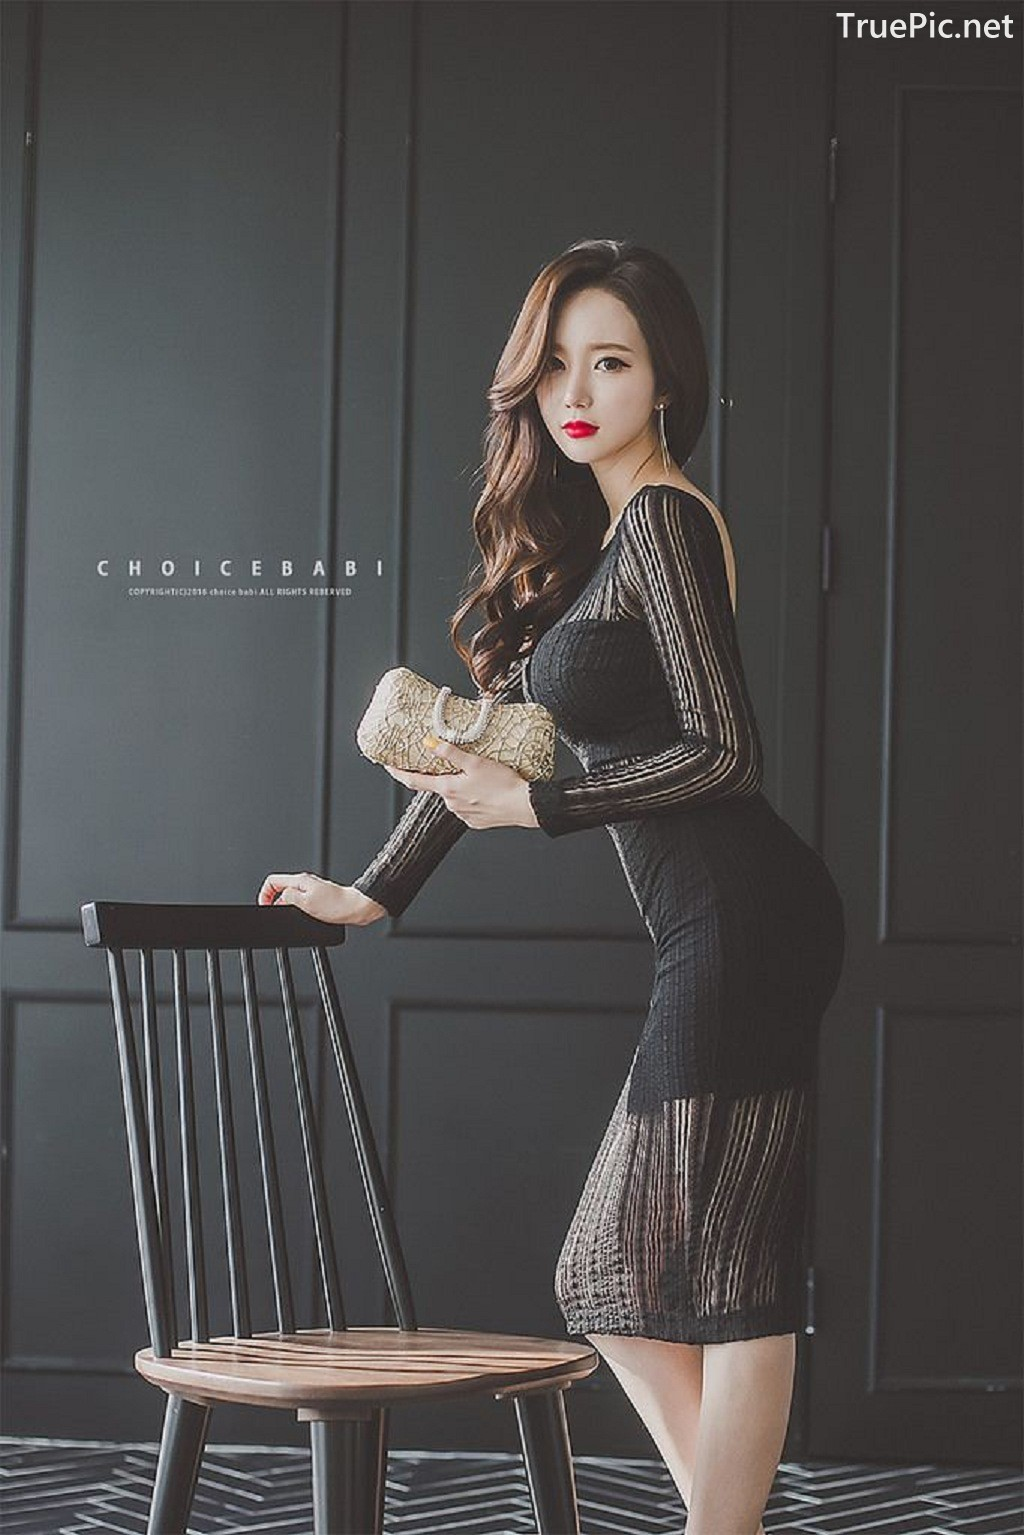 Image-Lee-Yeon-Jeong-Indoor-Photoshoot-Collection-Korean-fashion-model-Part-14-TruePic.net- Picture-2